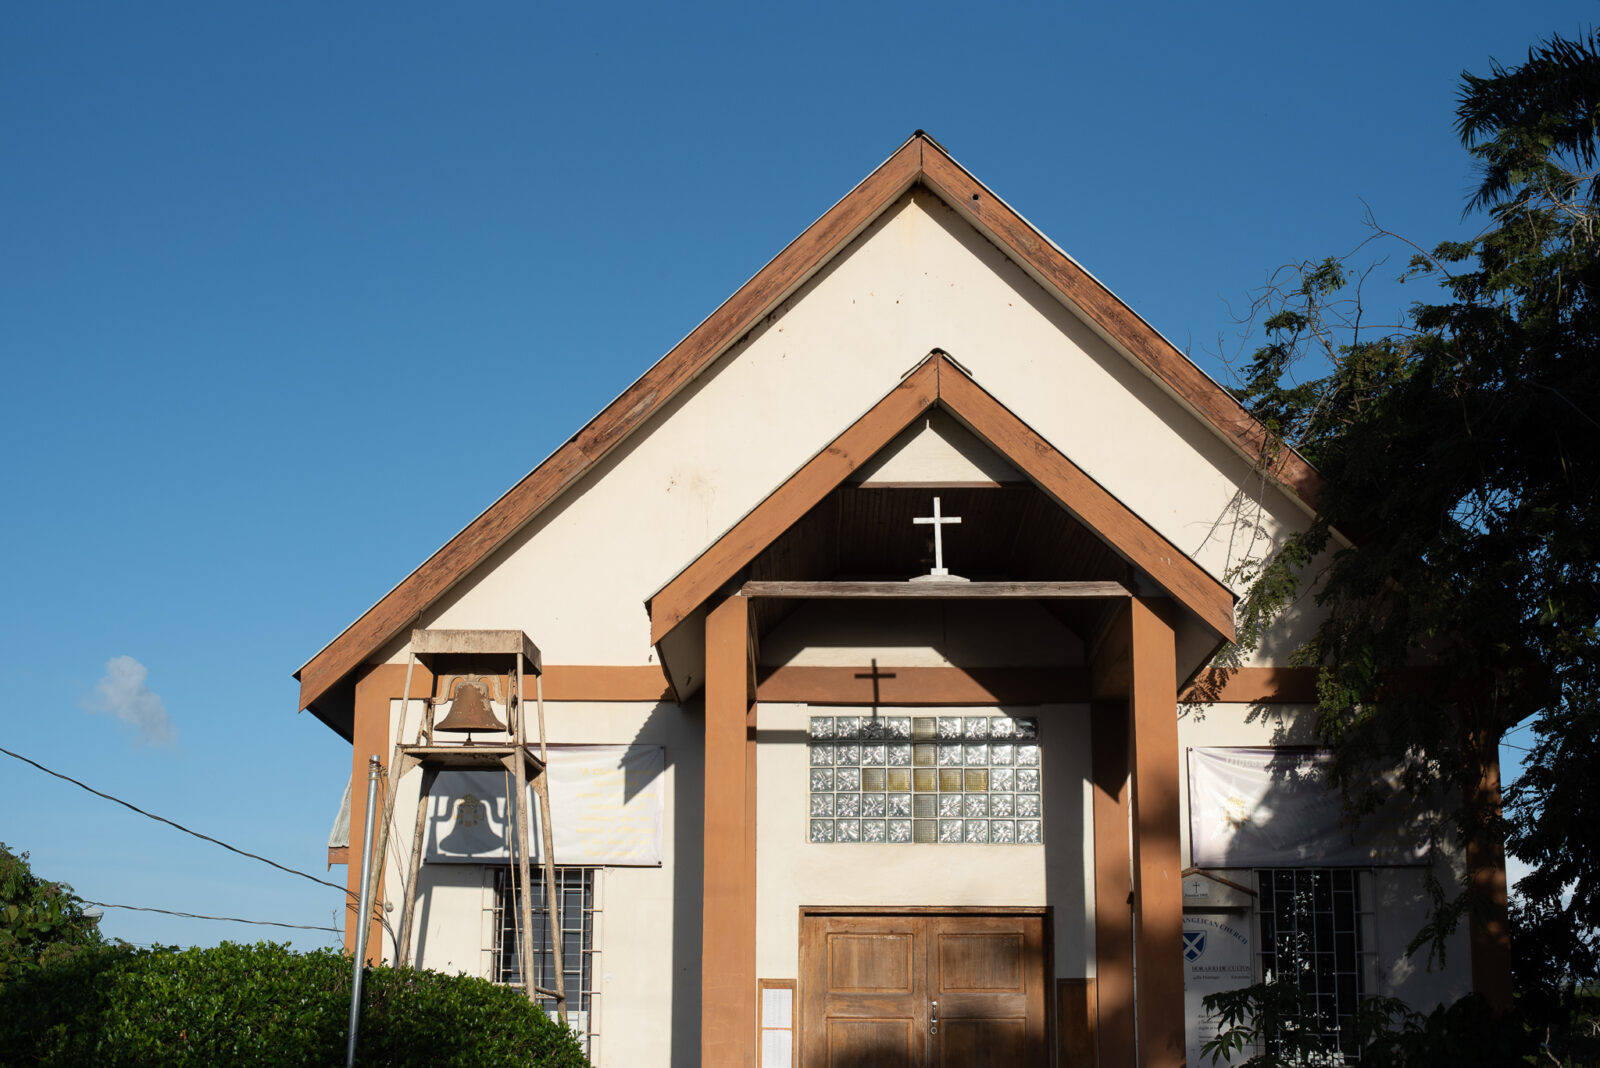 small church building with a cross over the front entrance